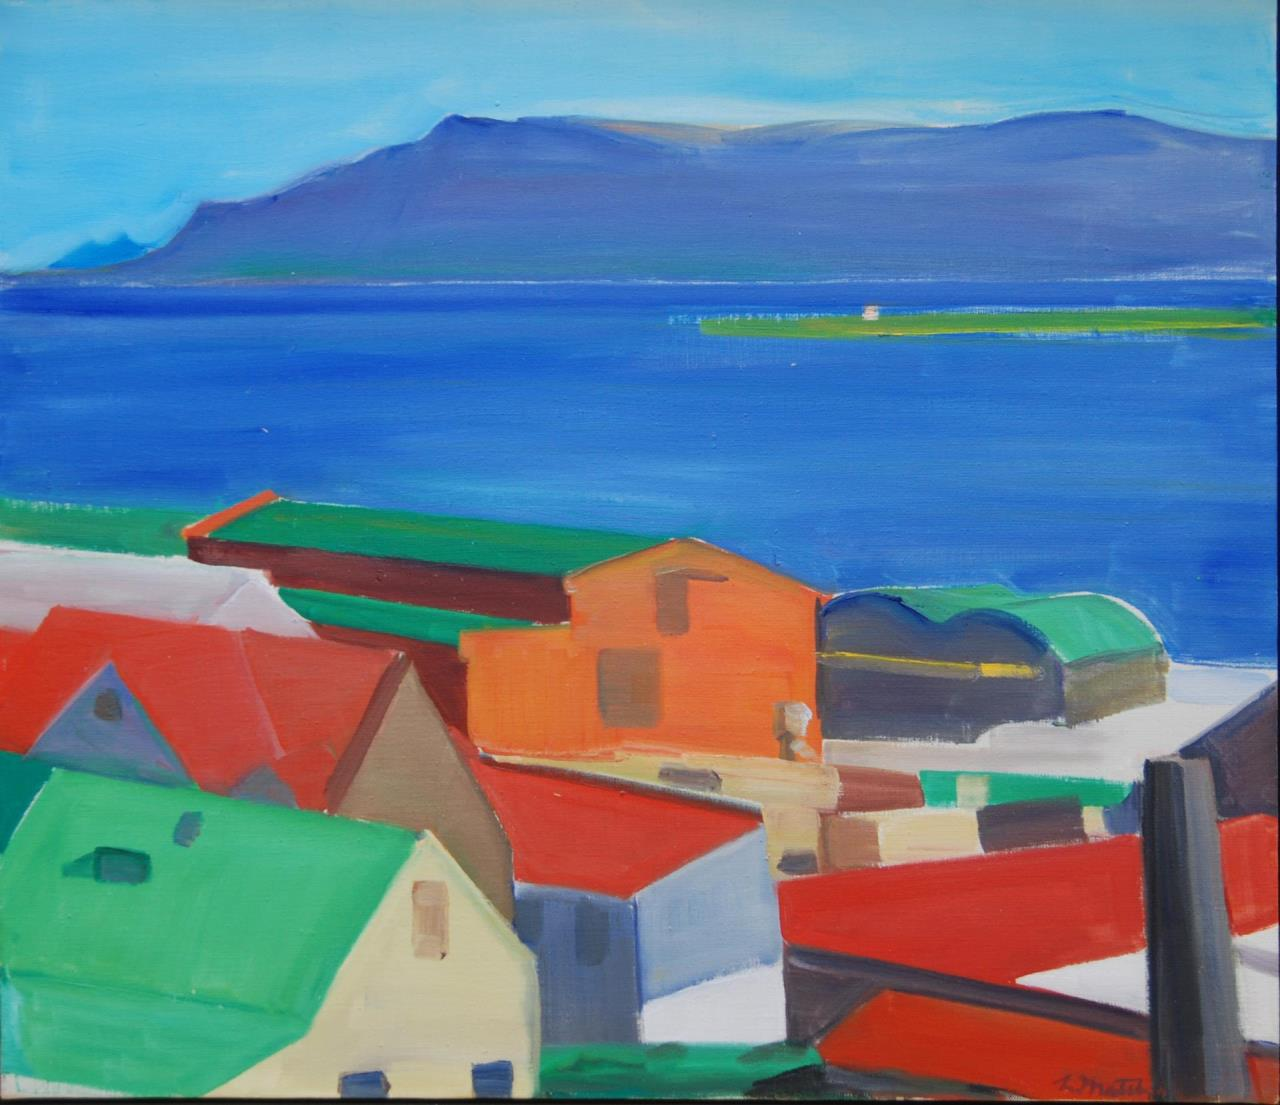 LOUISA MATTHIASDOTTIR VILLAGE SCENE OIL ON CANVAS Louisa Matthiasdottir (ICELANDIC/AMERICAN, 1917-